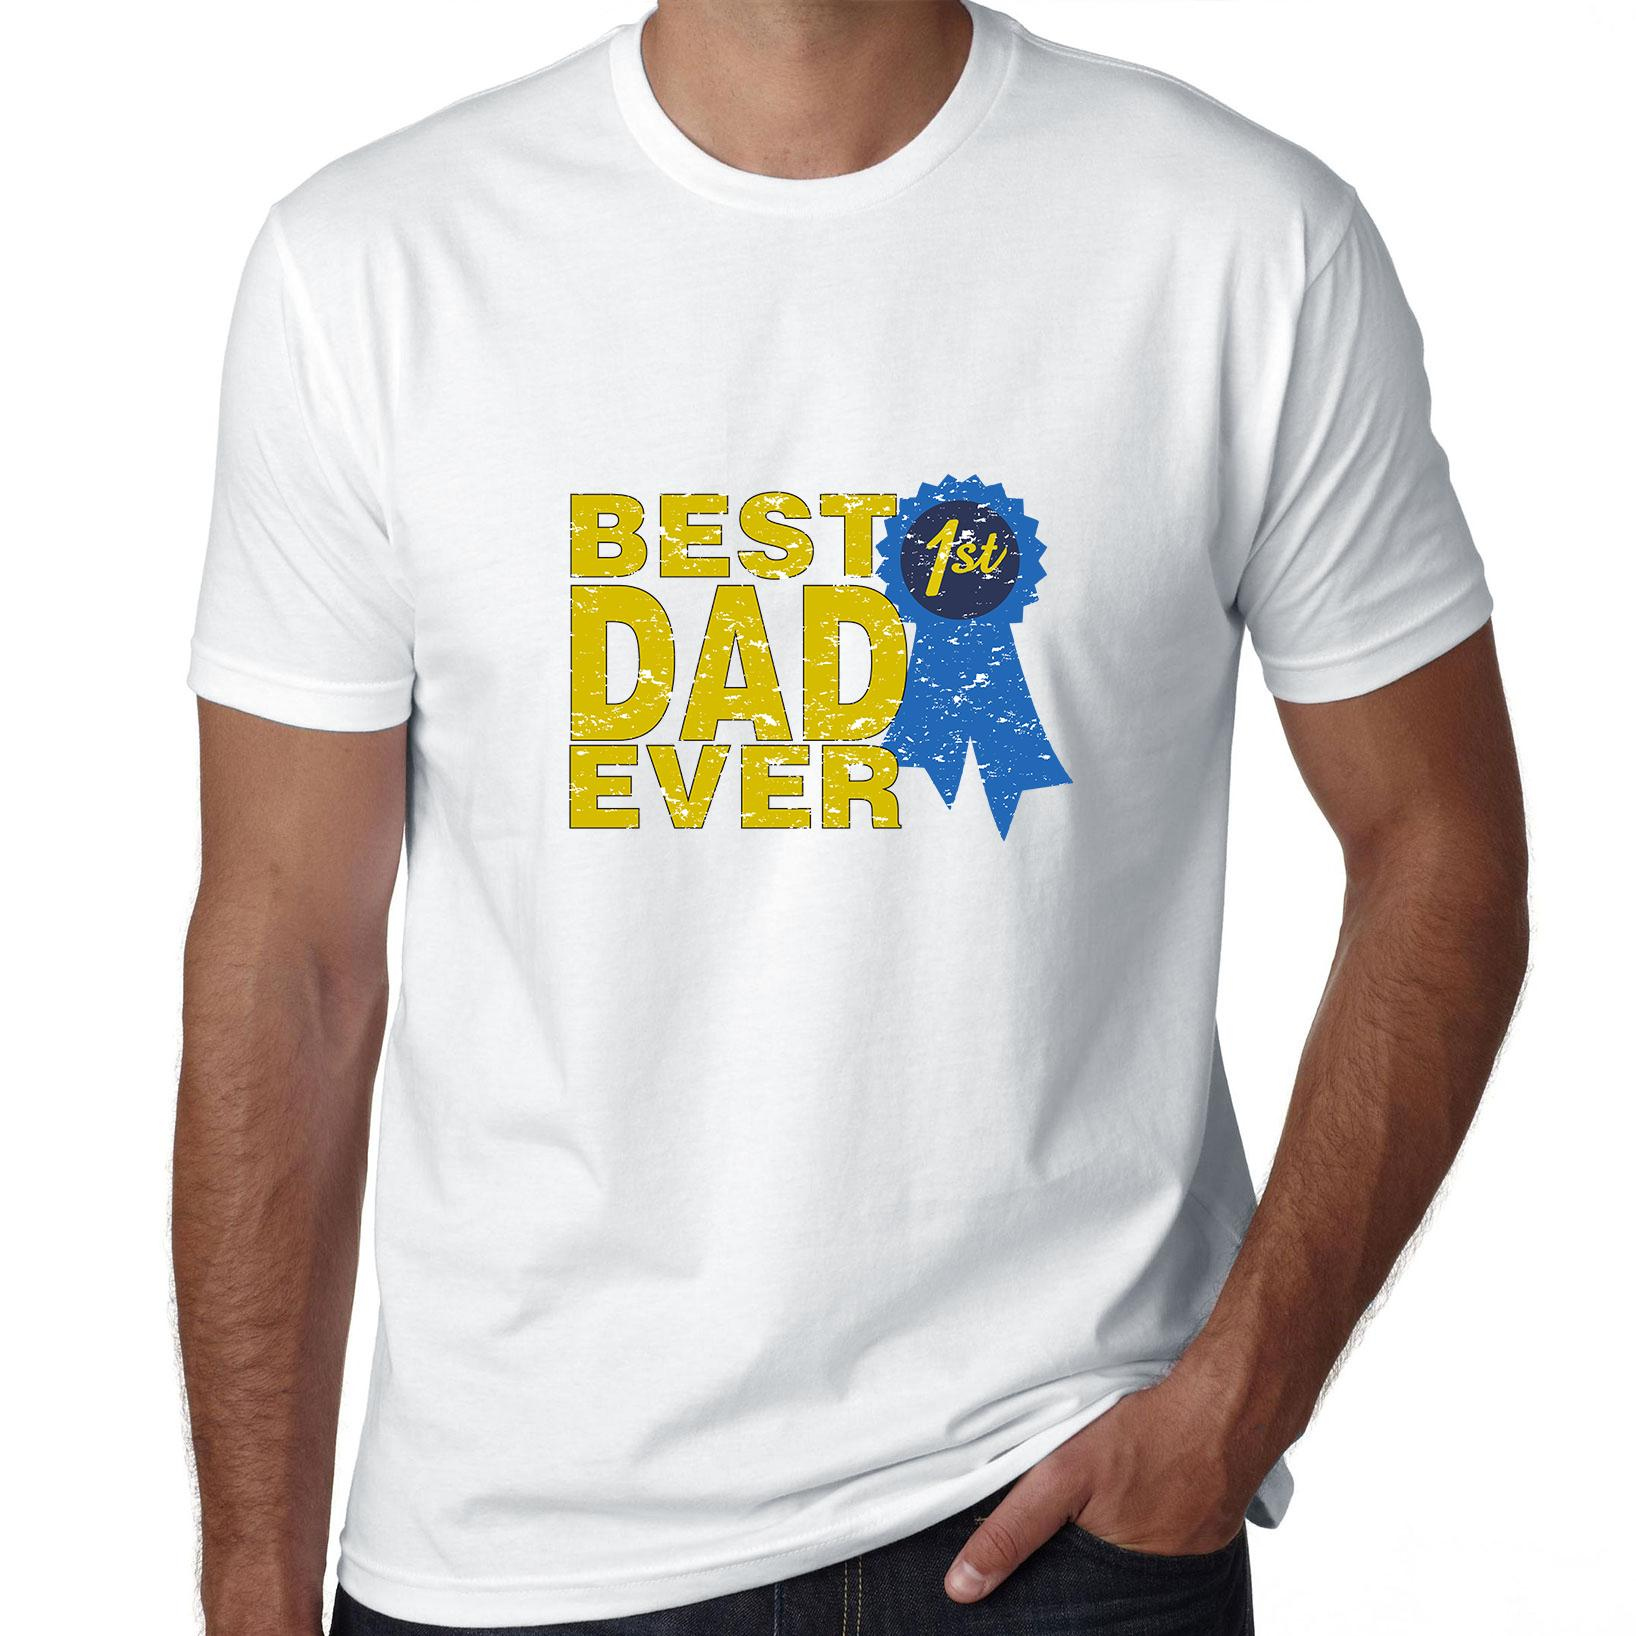 Best Dad Ever - First Place Ribbon Prize Men's T-Shirt